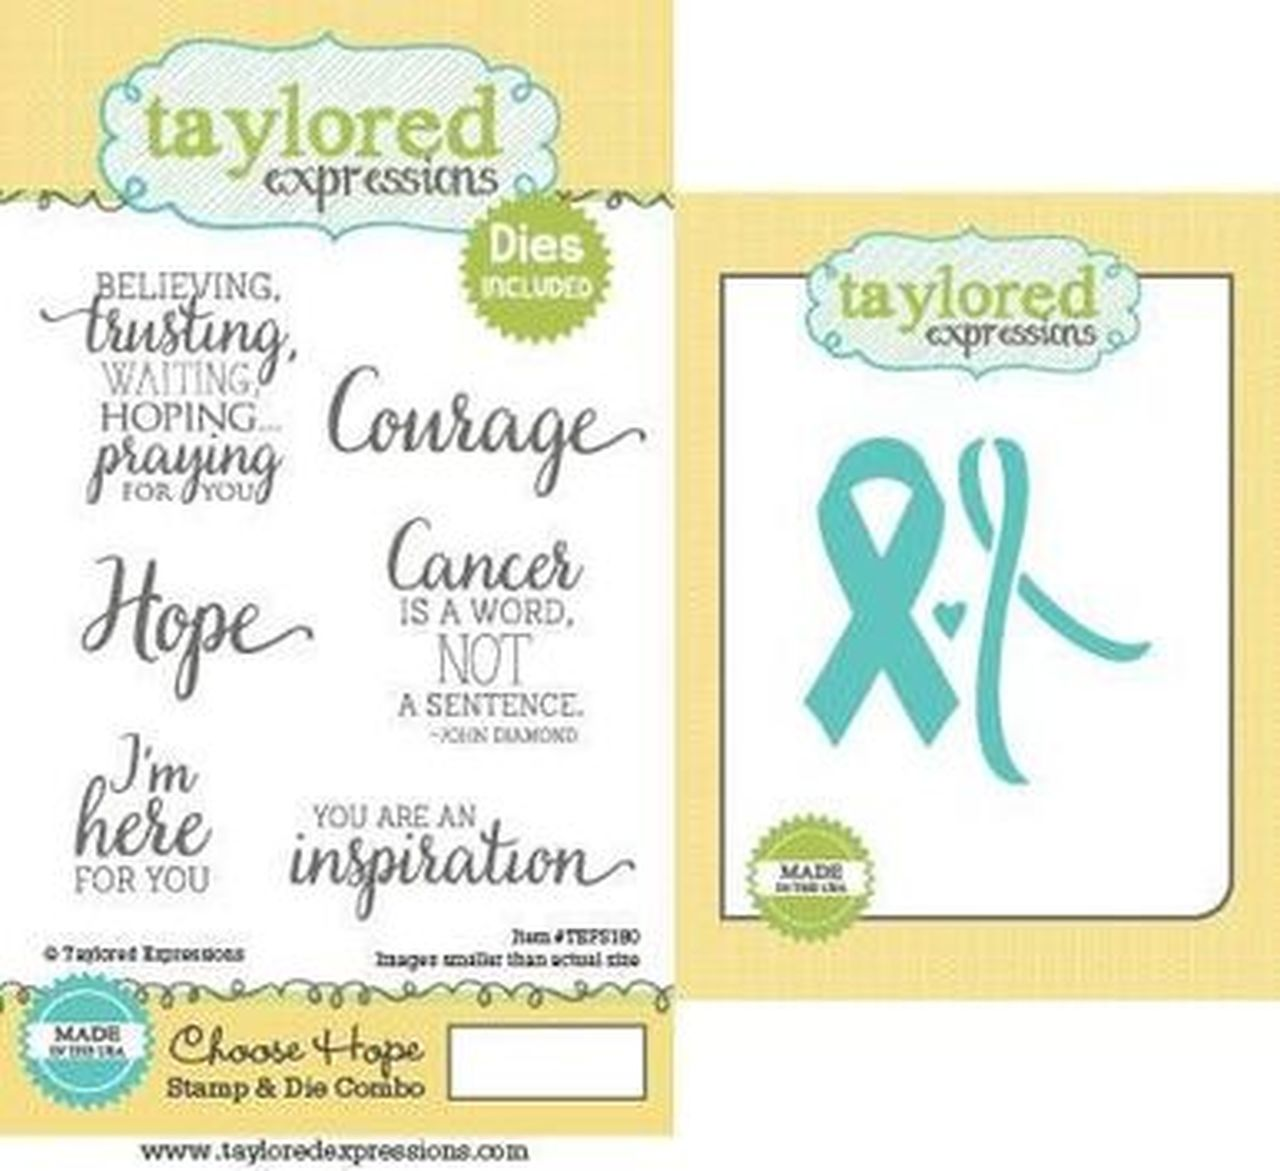 Taylored Expressions - Choose Hope Stamp & Die Combo